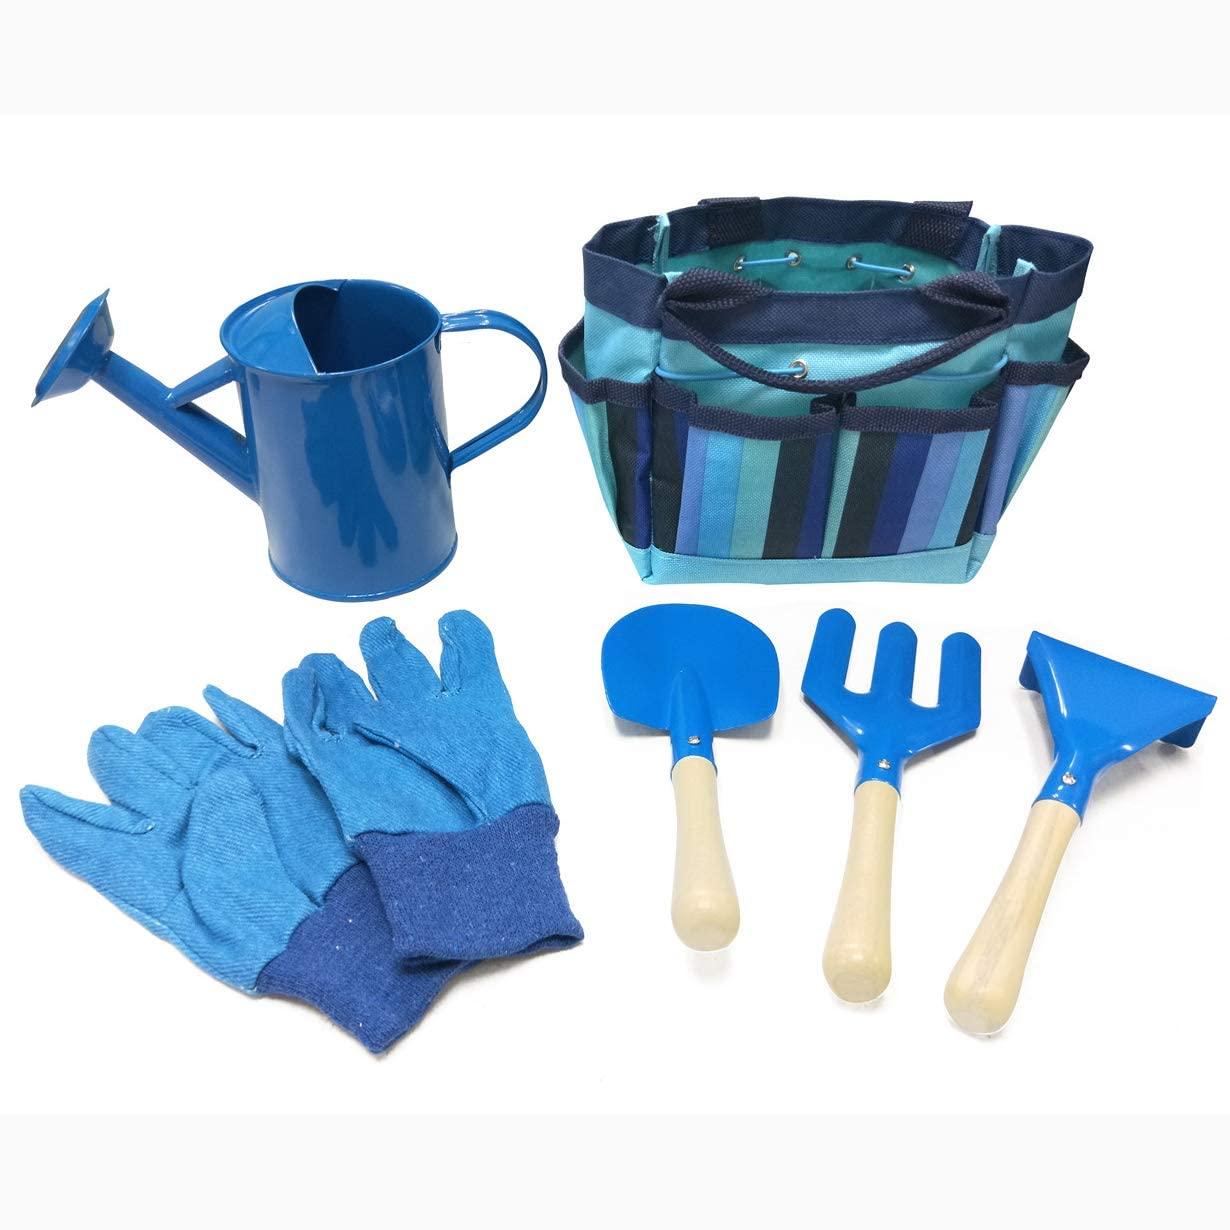 Megawodar Kids Garden Tool Set Boy for Storage Bag lowest price with Cheap mail order specialty store